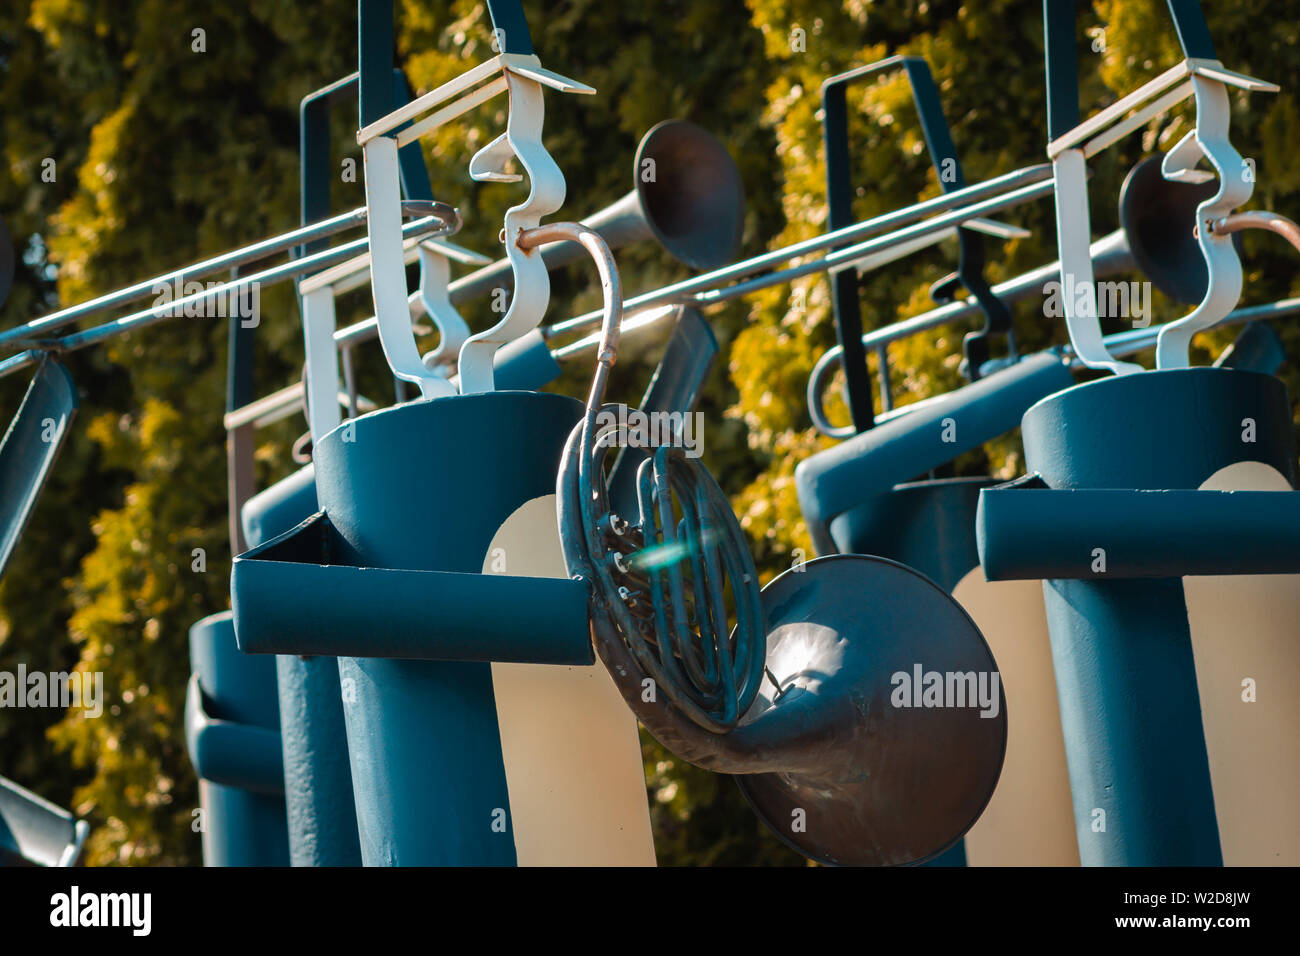 Marching band statues at the Frederik Meijer gardens - Stock Image